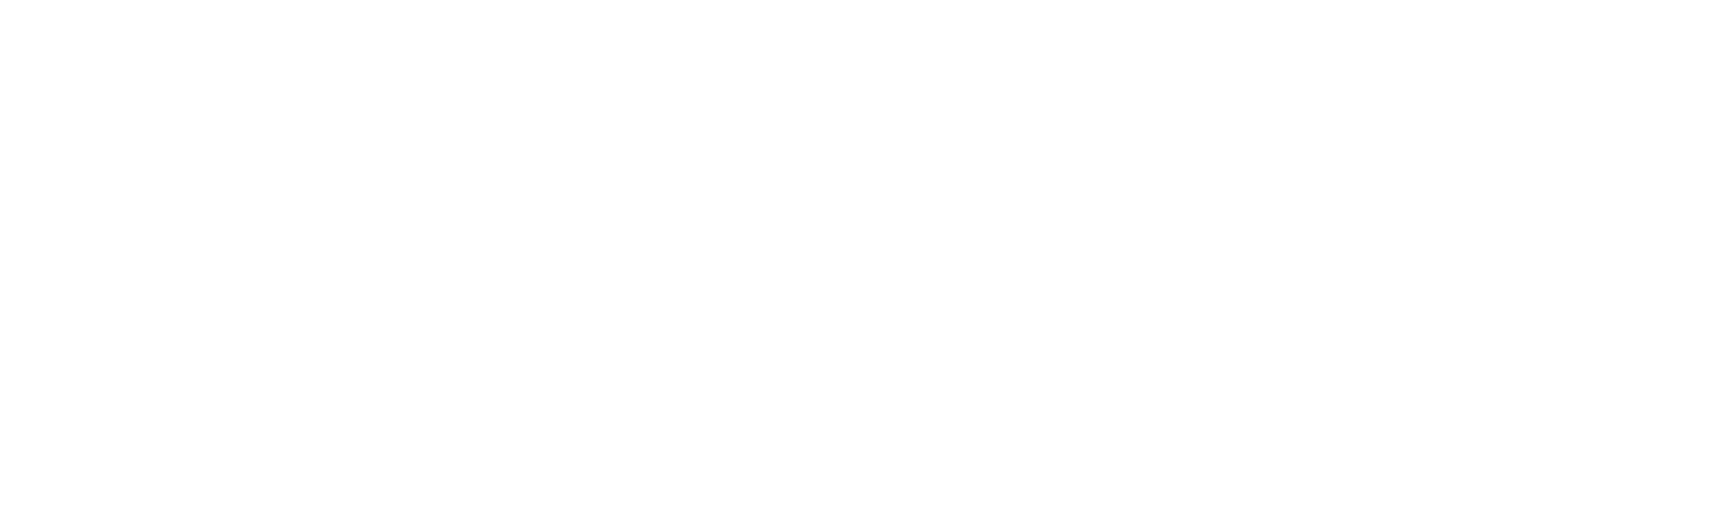 Infinity Resources